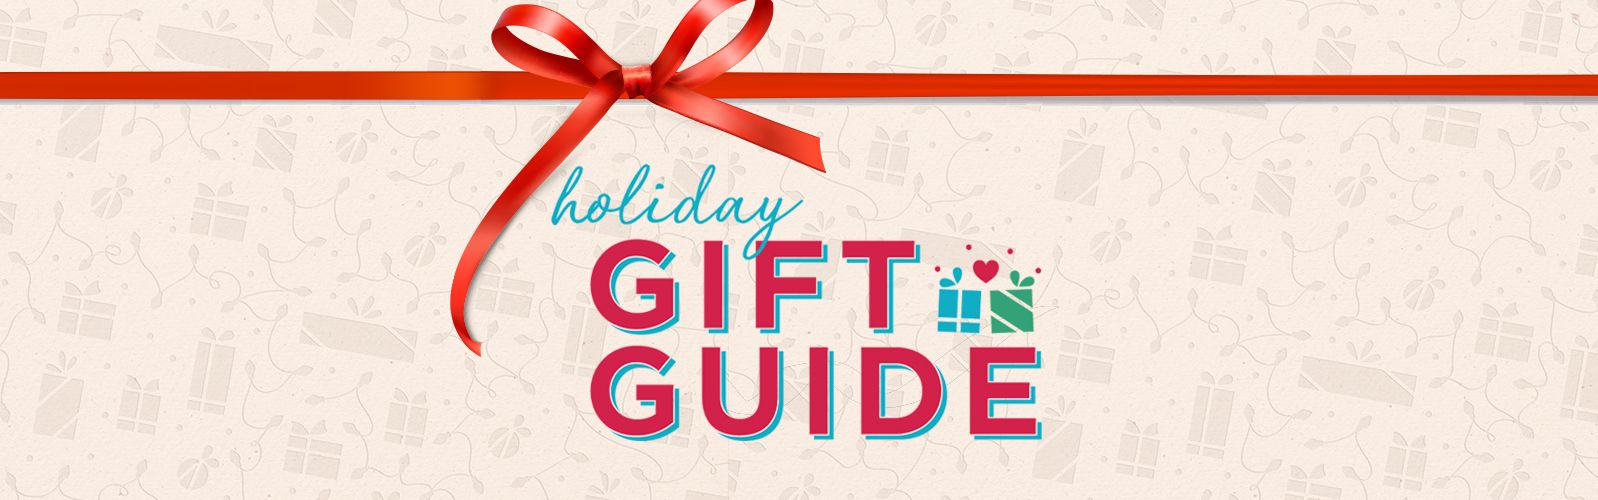 Video game gift guide 2019 christmas